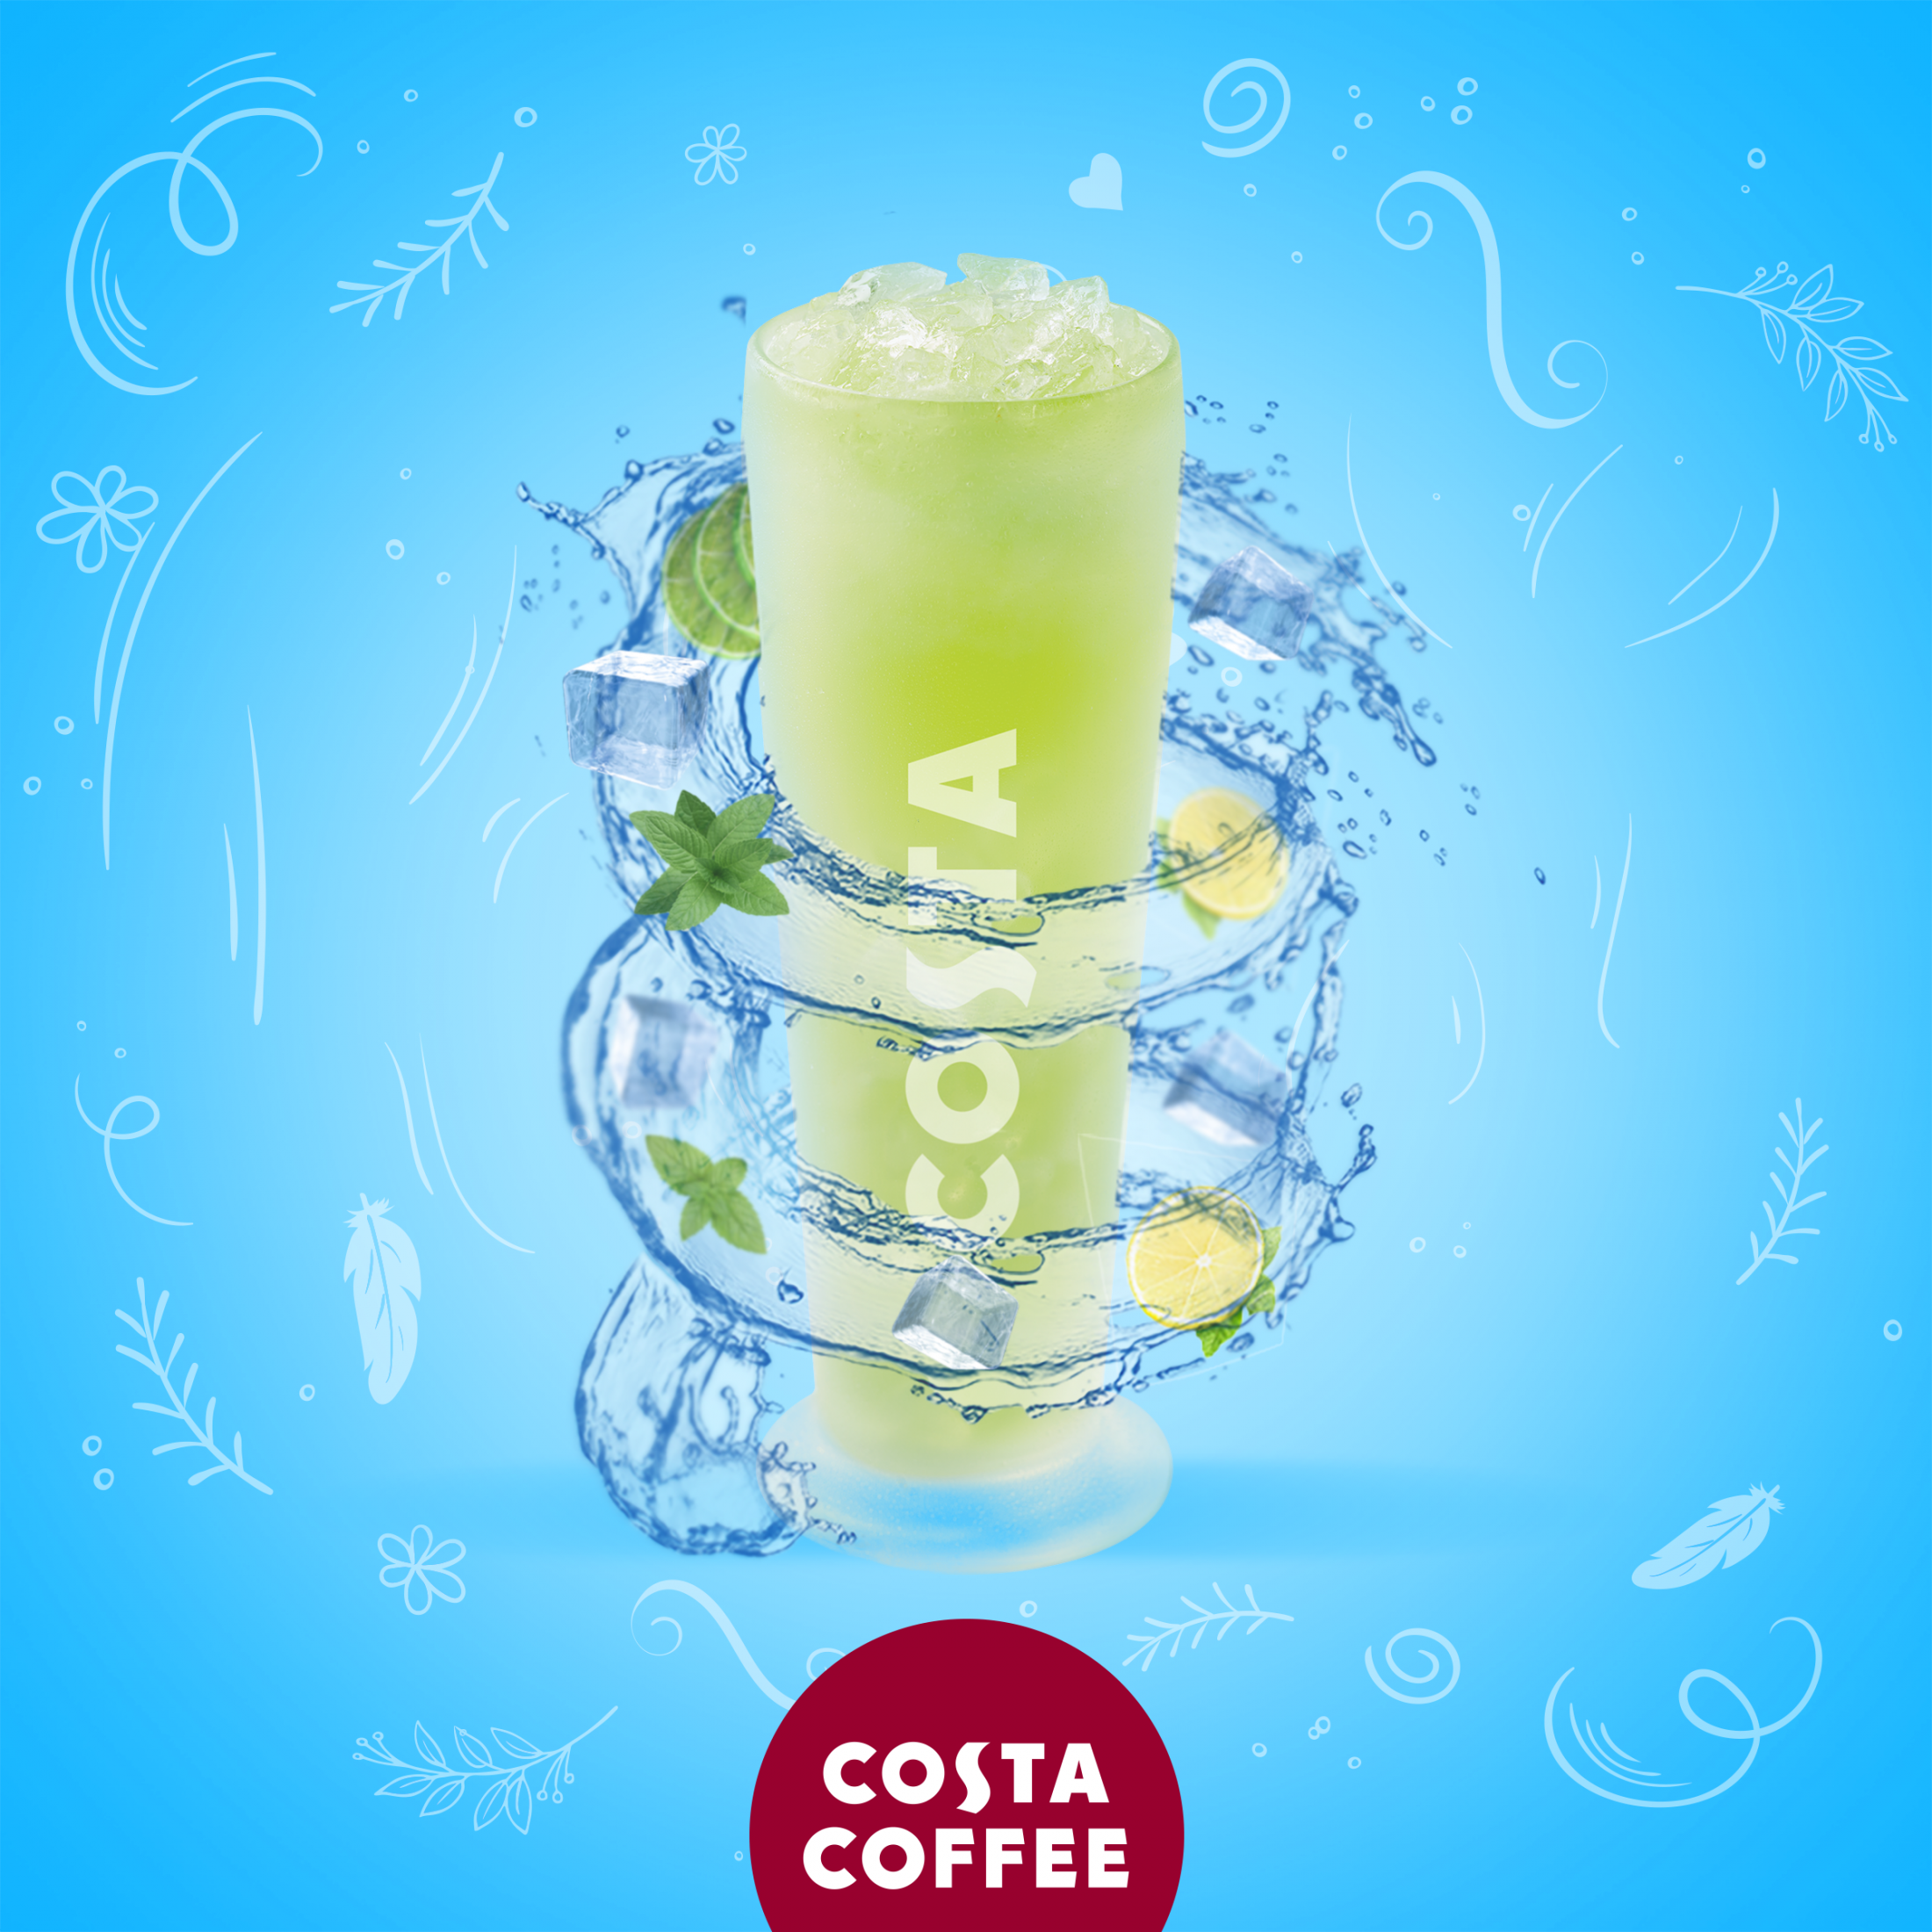 Costa Coffee: Costa Coffee Summer Campaign